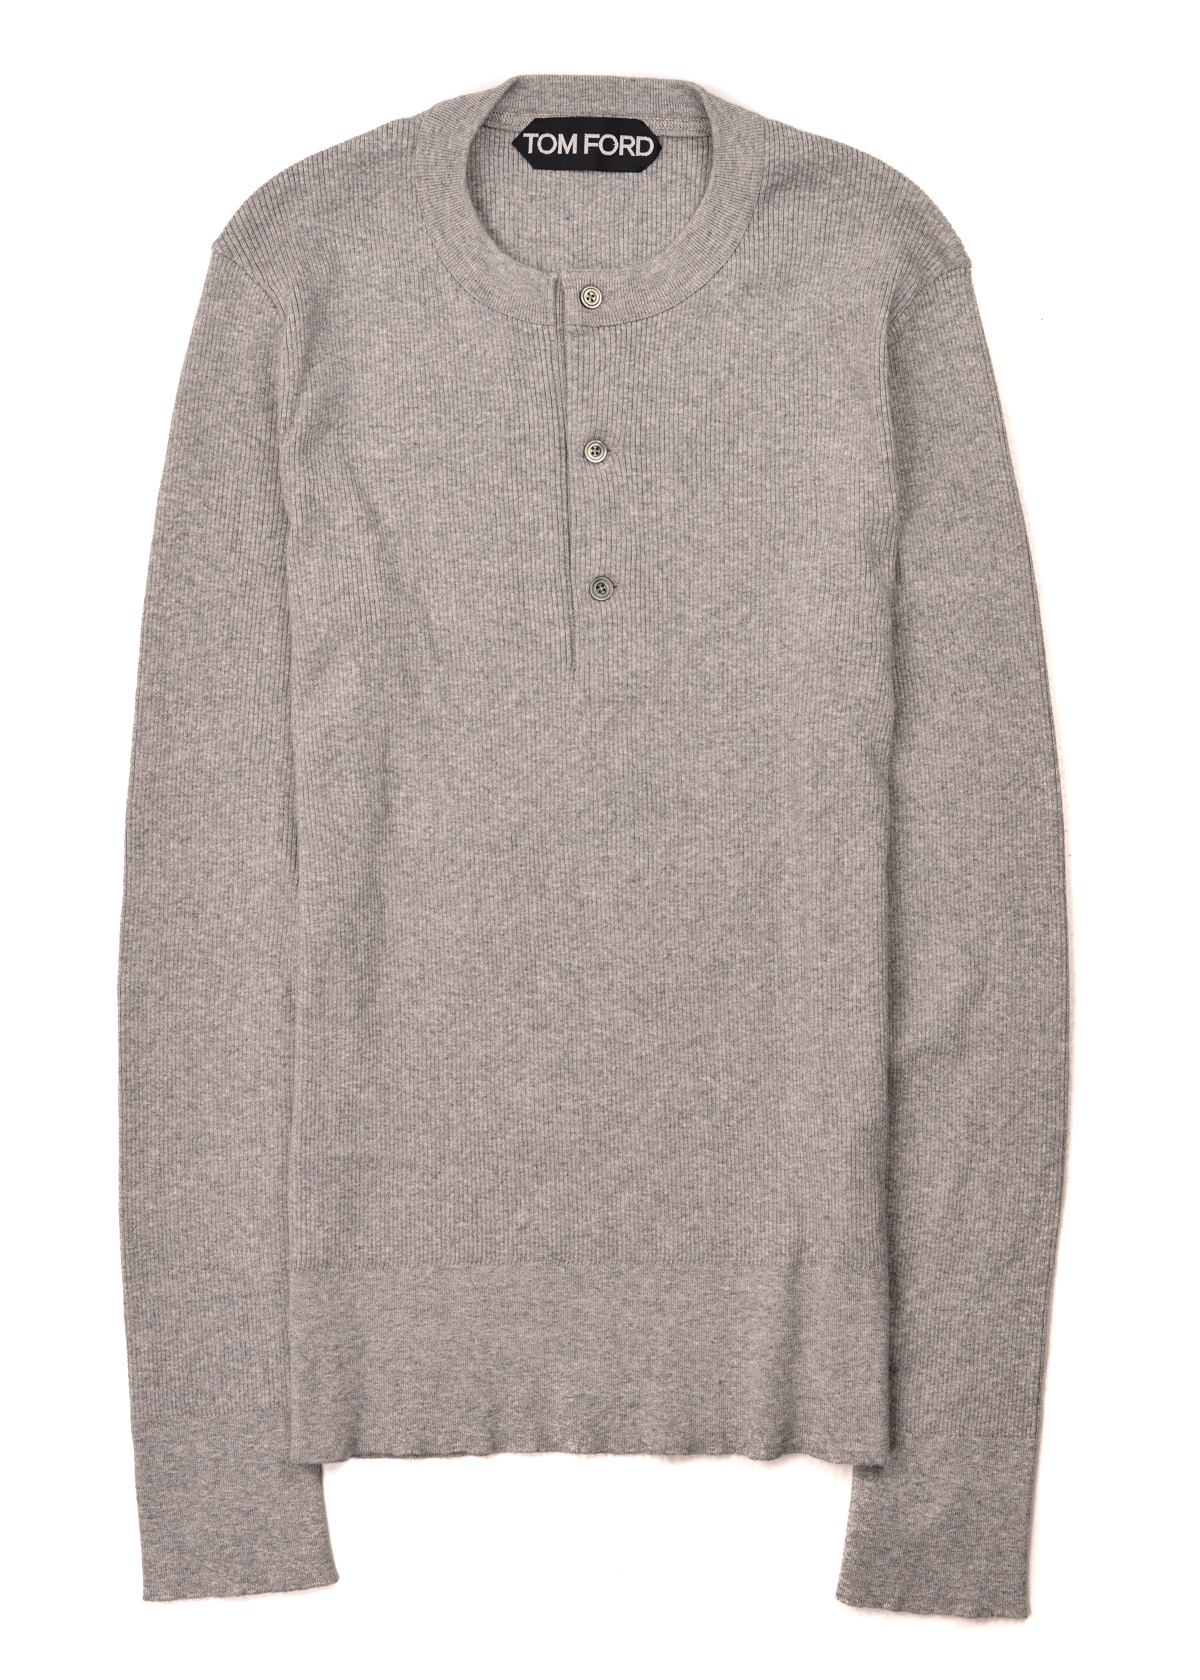 f568abc73fd9e Details about Tom Ford Mens Grey Cotton Henley Ribbed Button Sweater Size  IT46/US S~RTL$1250